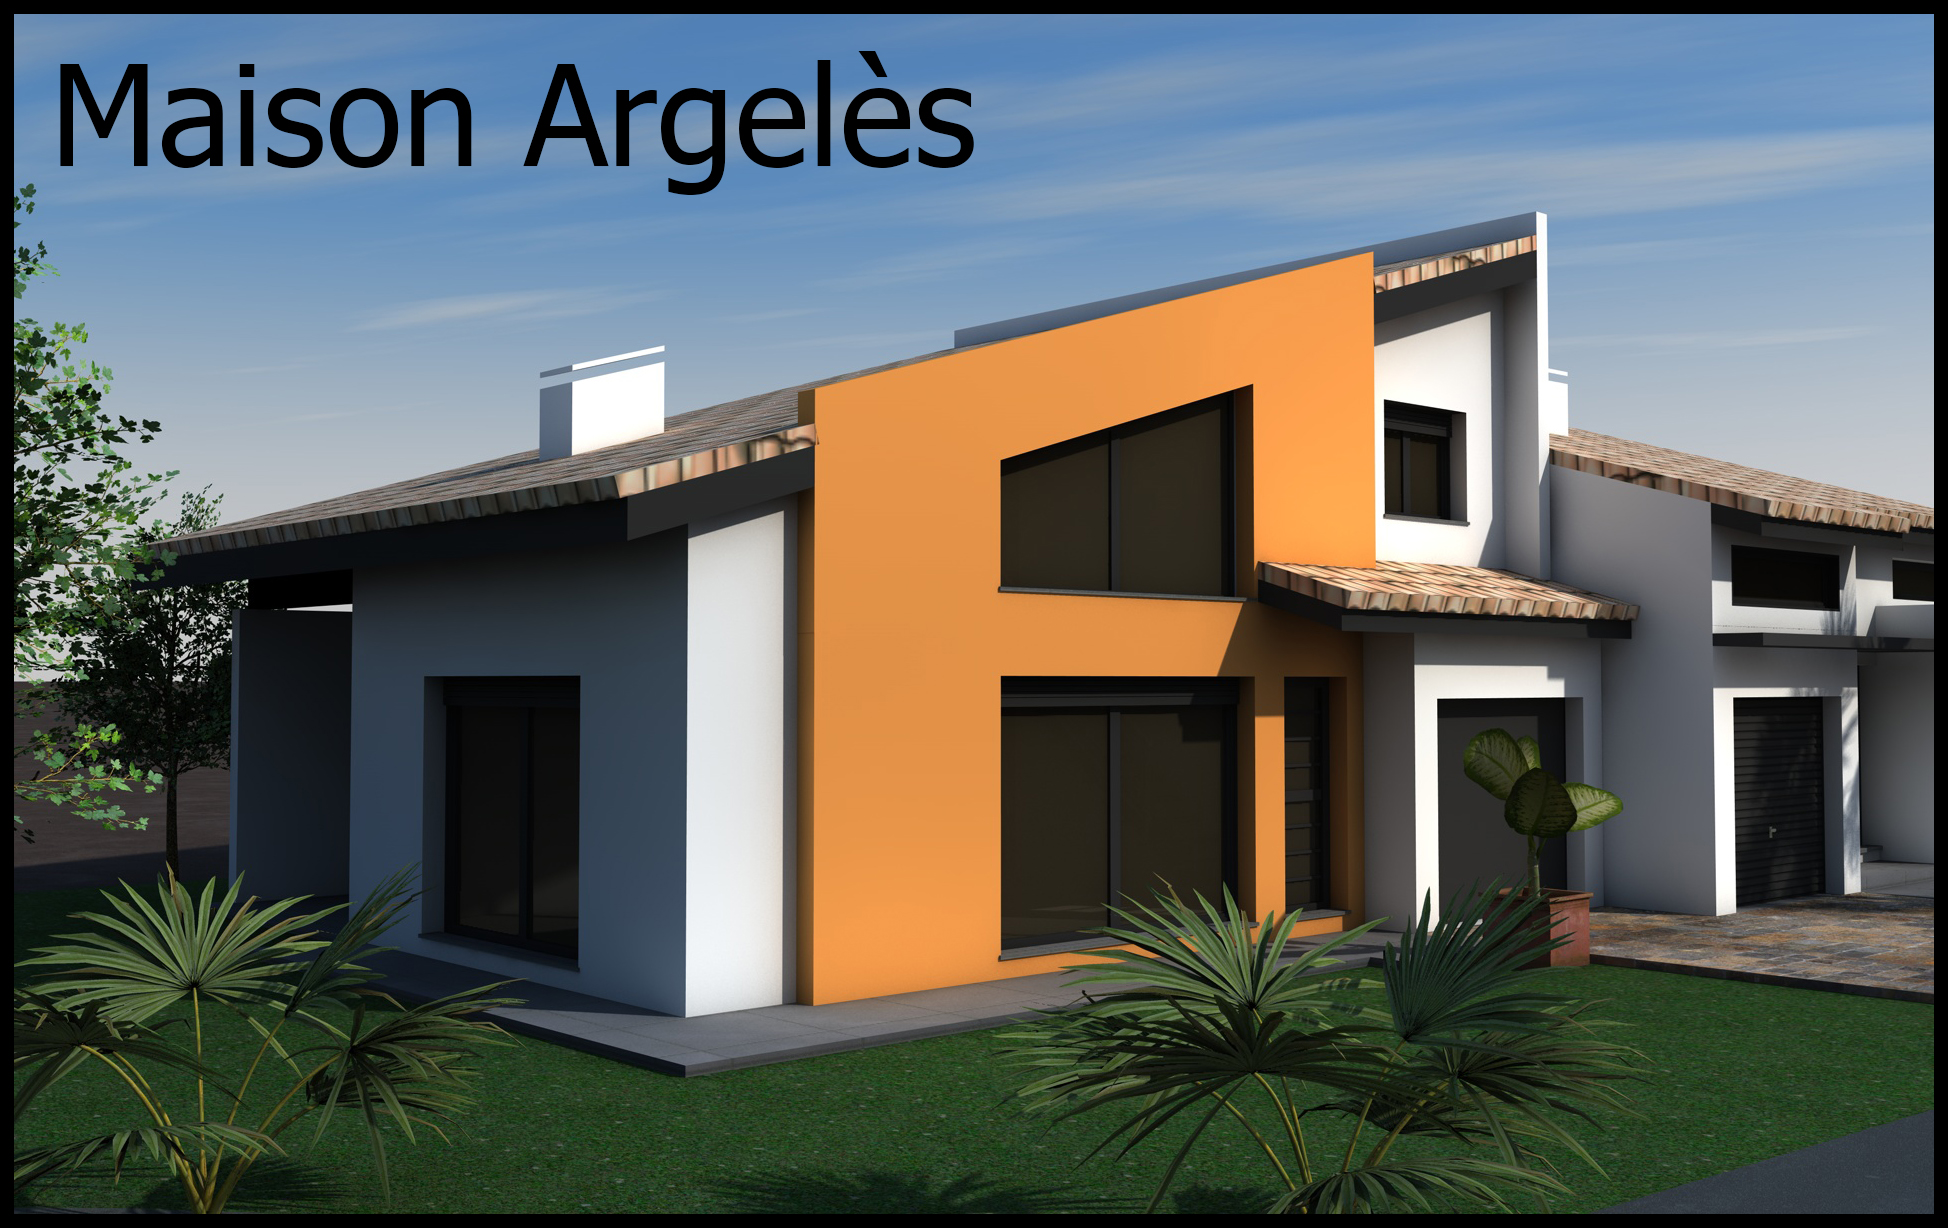 Argeles maison architecture moderne for L architecture moderne plan